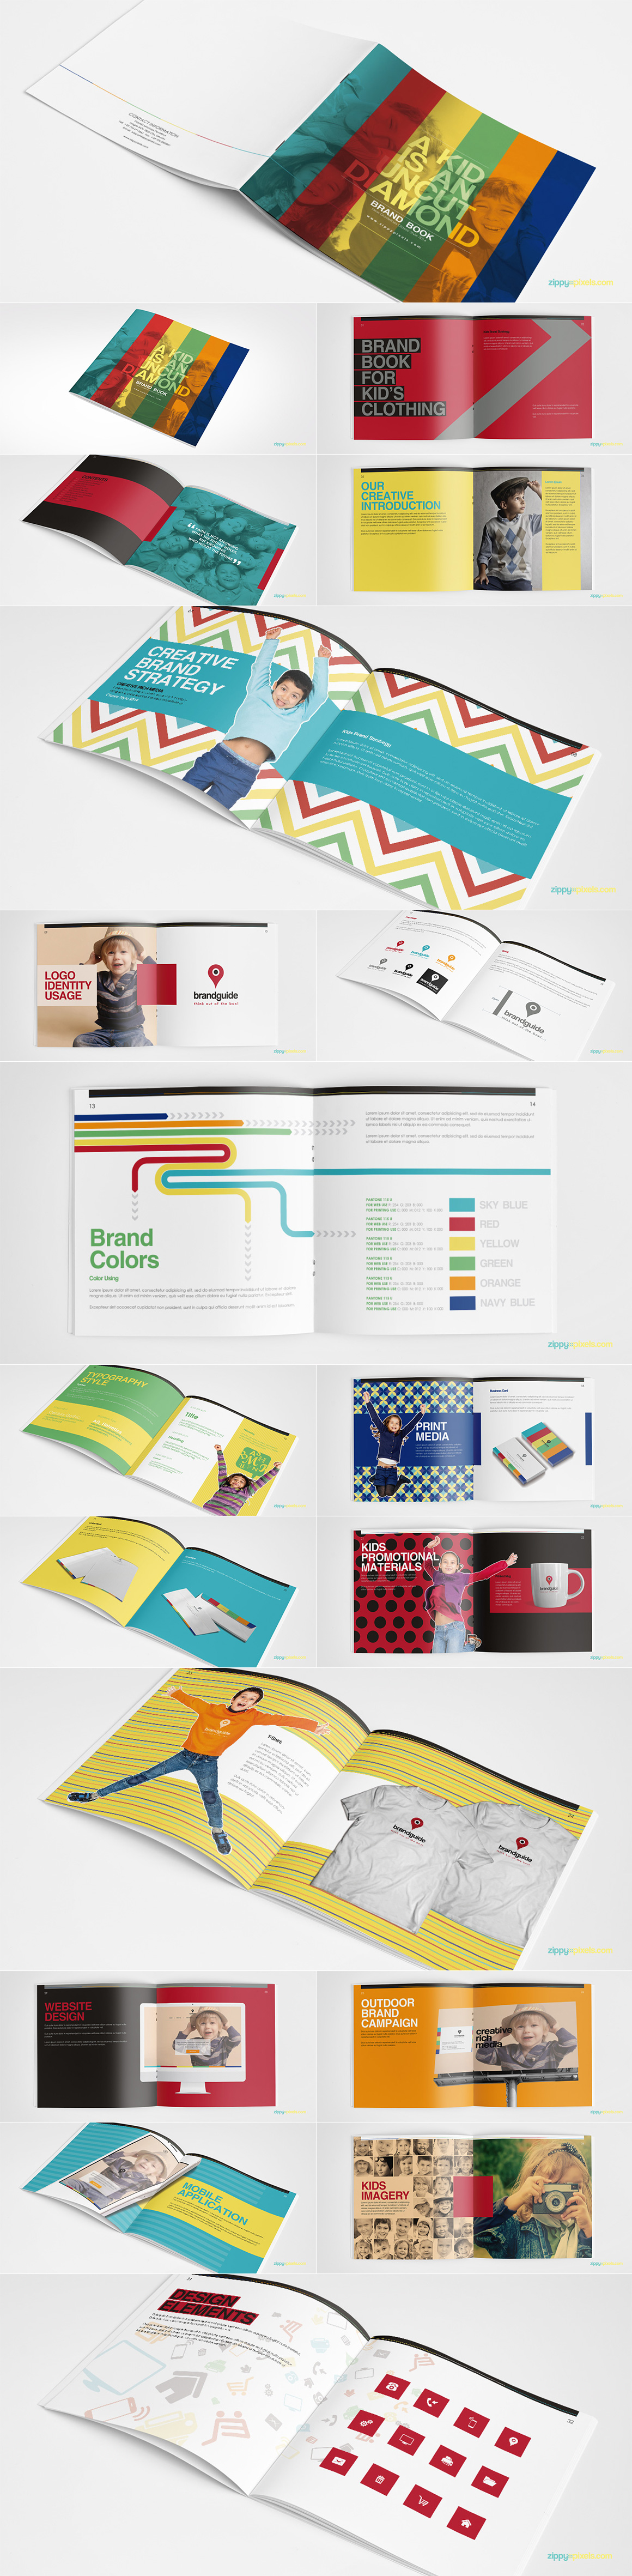 Style Guide & Brand Book Templates-strip12